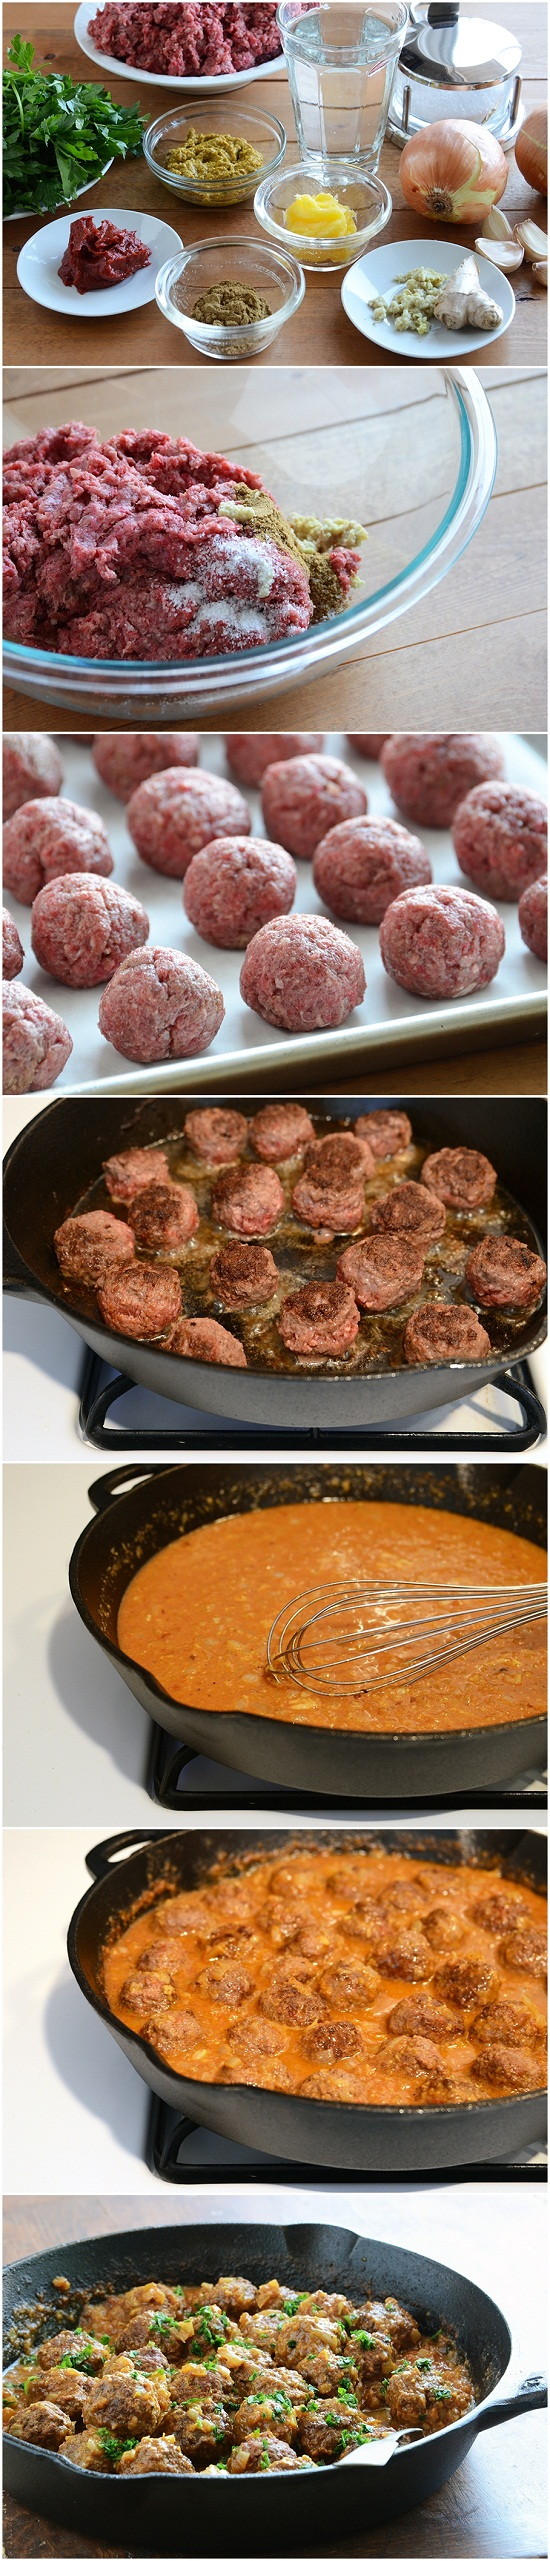 Lamb Meatballs in a Spicy Curry- Ingredients: 1 pound Lamb Mince - 1 Tablespoon Ground Cumin - 1 Tablespoon Grated Fresh Ginger - 1 teaspoon Salt - 2 Tablespoons Butter Or Ghee - 1 Large Onion, Peeled And Finely Diced -  4 cloves Garlic, Peeled And Crushed - 4 Tablespoons Madras Paste - 1 cup, 4 tablespoons, ¾ teaspoons, 1 pinches Boiling Water - 2 Tablespoons Tomato Paste - ½ cups Coriander Leaves, Roughly Chopped